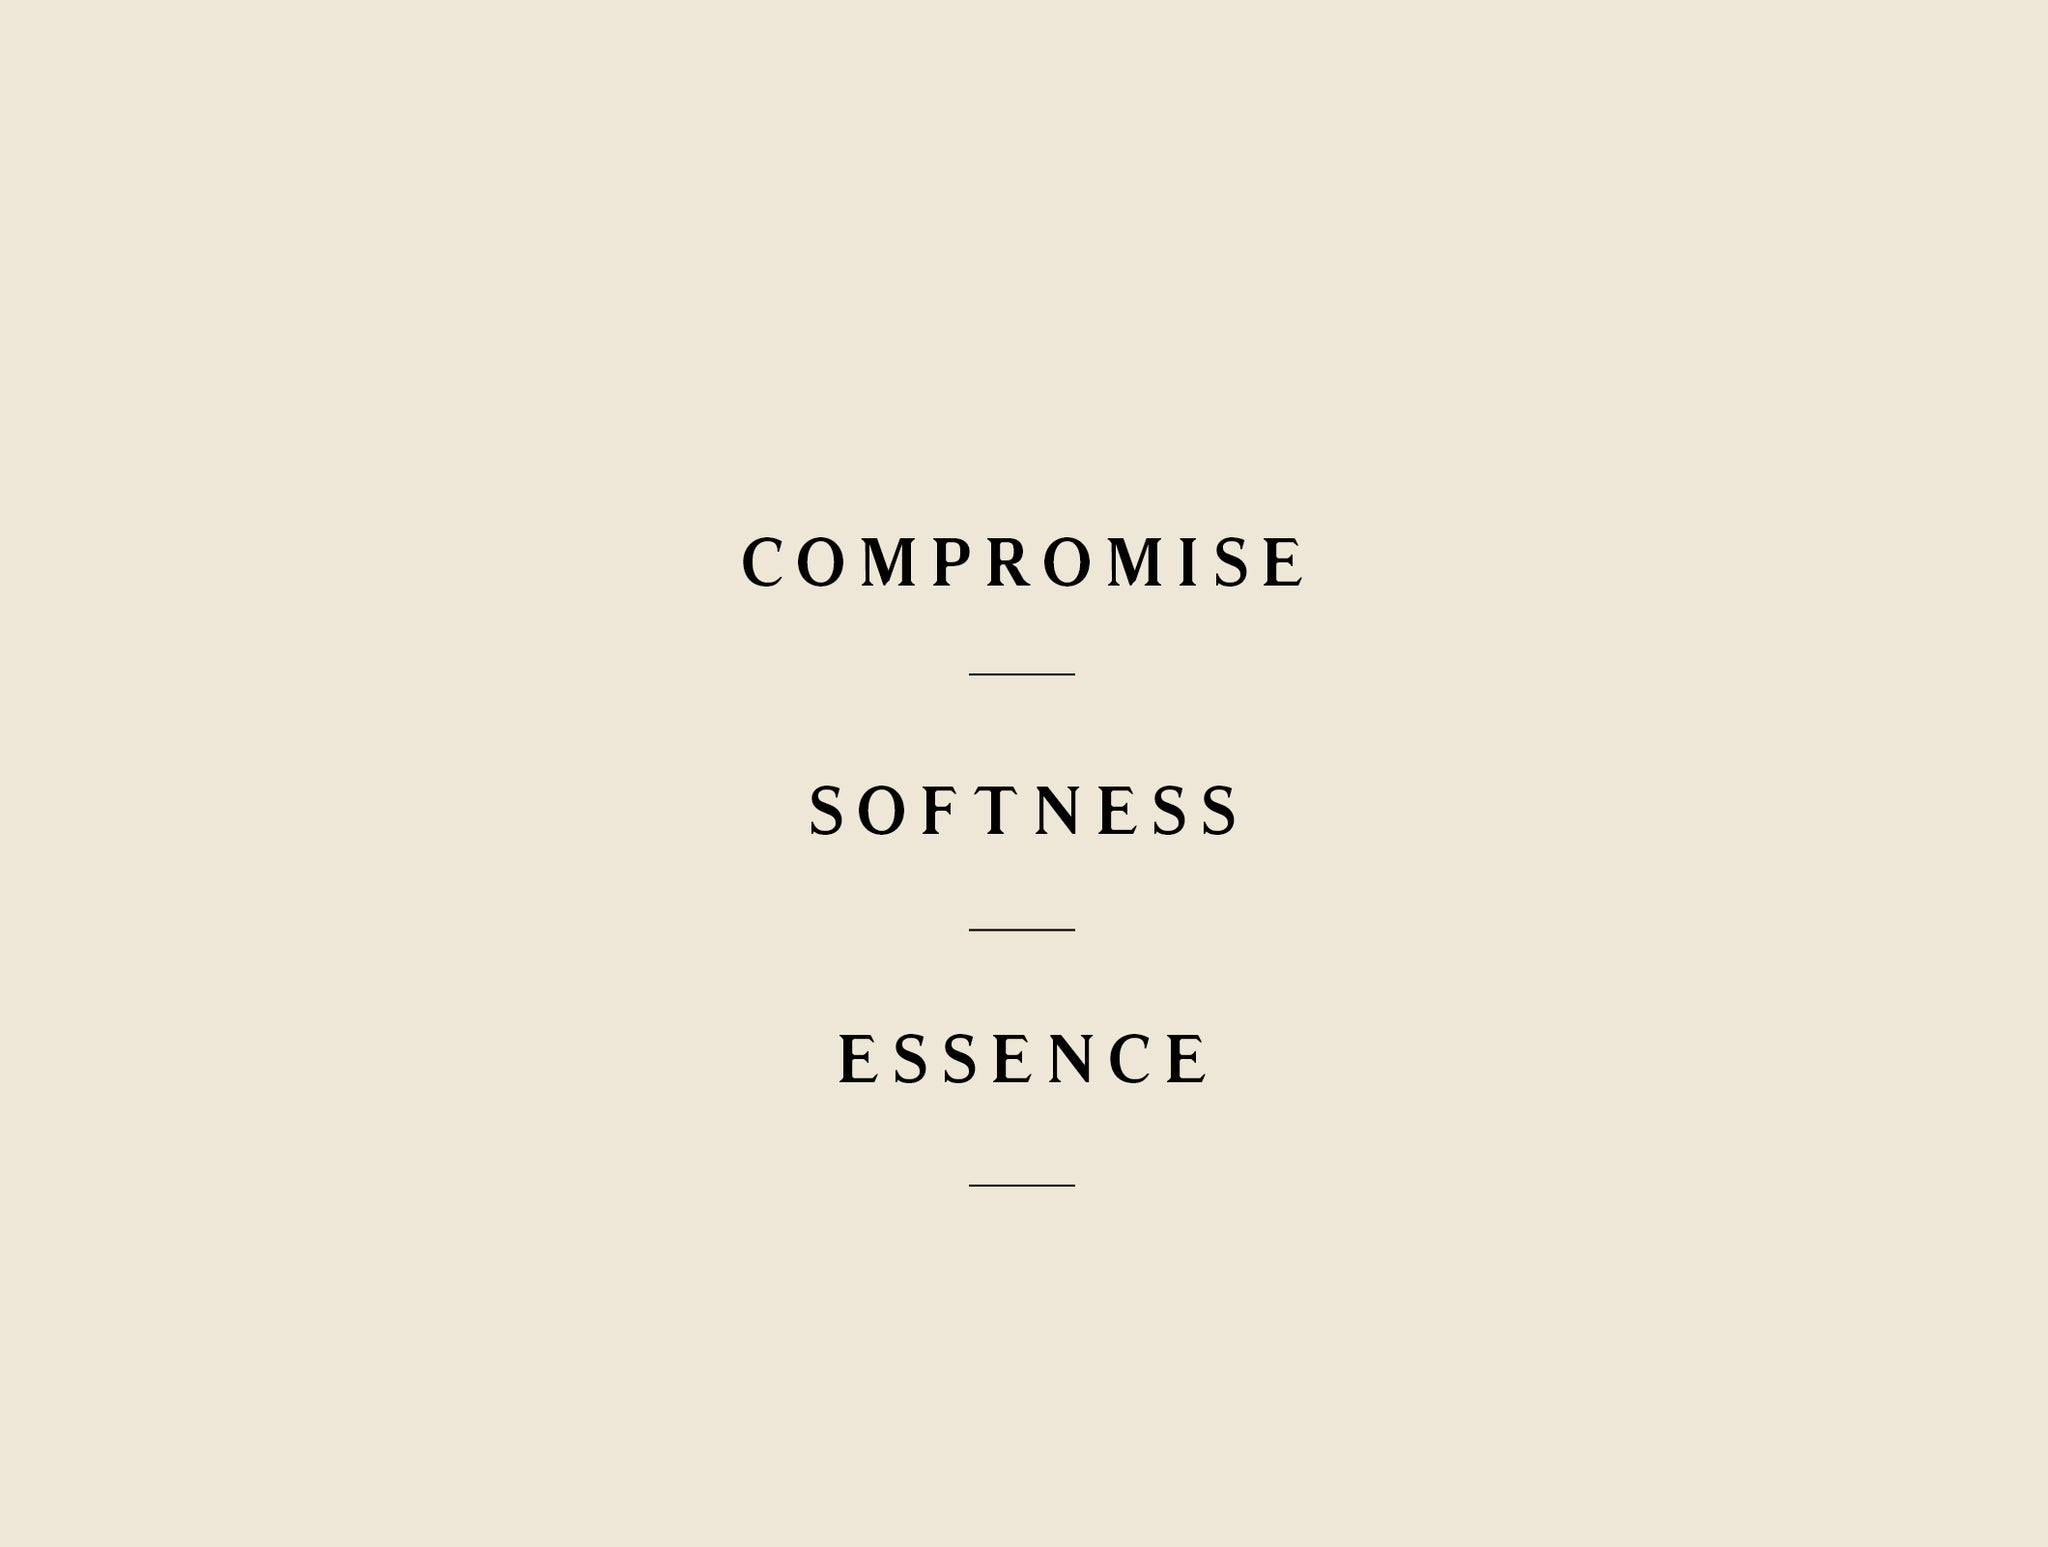 Compromise. Softness. Essence.